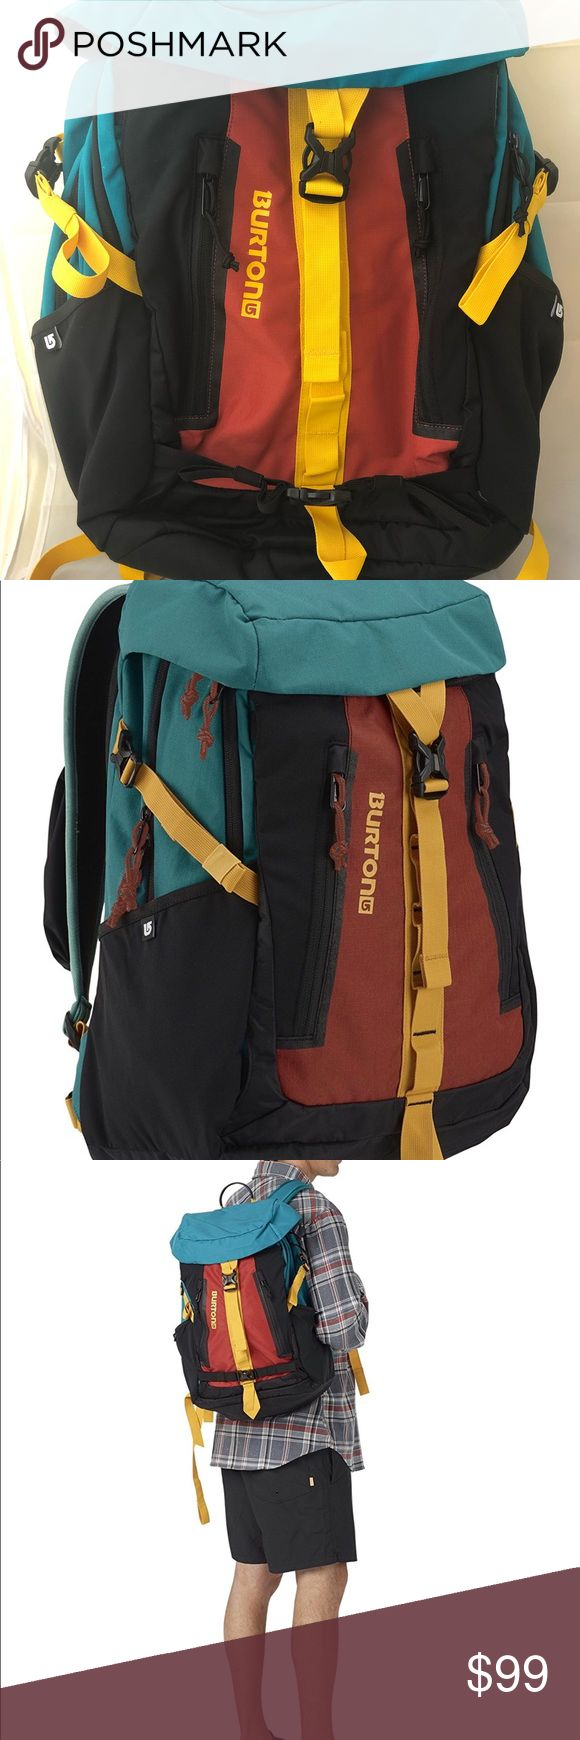 Burton Day Hiker Pinnacle 31 L Backpack Tandori Burton Day Hiker Pinnacle 31 L Backpack Tandori Ripstop, One Size. NWT Product Overview 31L [20in x 13in x 7.5in] [50cm x 34cm x 19cm] 2.3 lbs./ 1kg Cush Ergonomic Shoulder Harness with Adjustable Sternum Strap, Shoulder Pocket and Removable Waist Strap Padded Laptop/ Hydration Sleeve [16.5in x 10.5in x 1.5in] [42cm x 26.5cm x 4cm] Additional Tablet Sleeve [10.5in x 8.5in] [26.5cm x 21.5cm] Fleece-Lined Goggle Pocket, Stowable Board / Cinch…